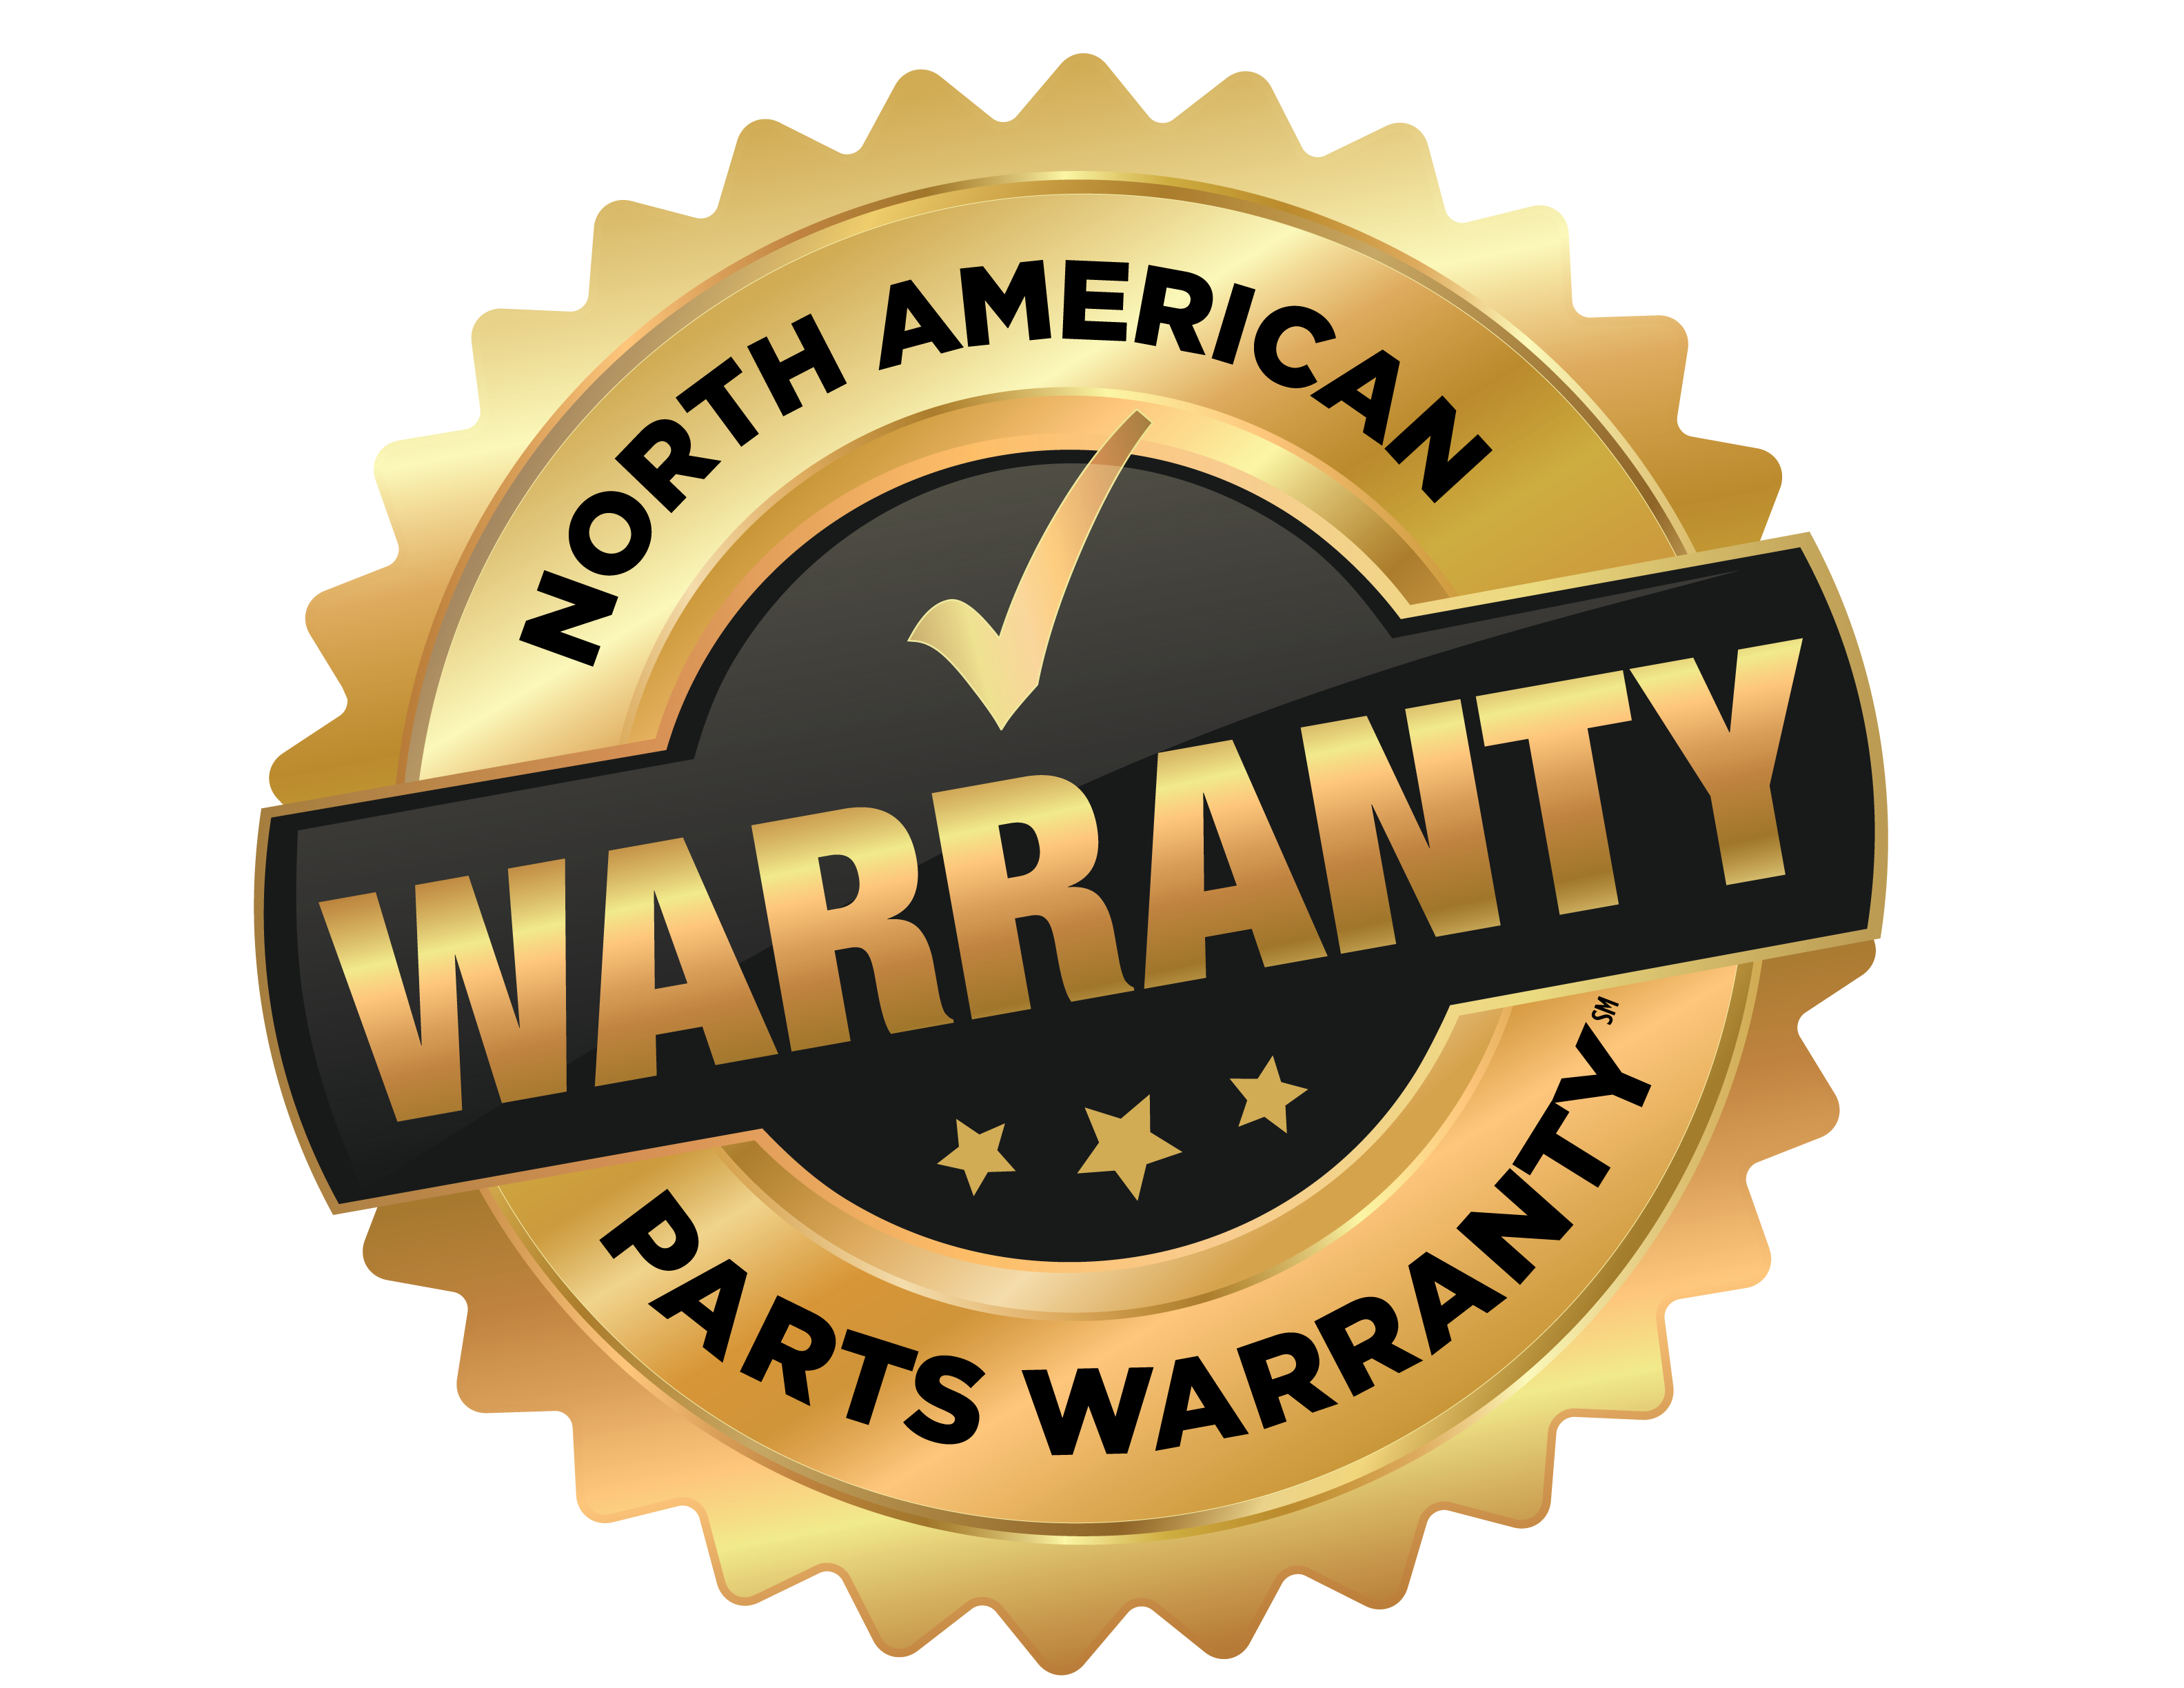 North American Parts Warranty Logo2019